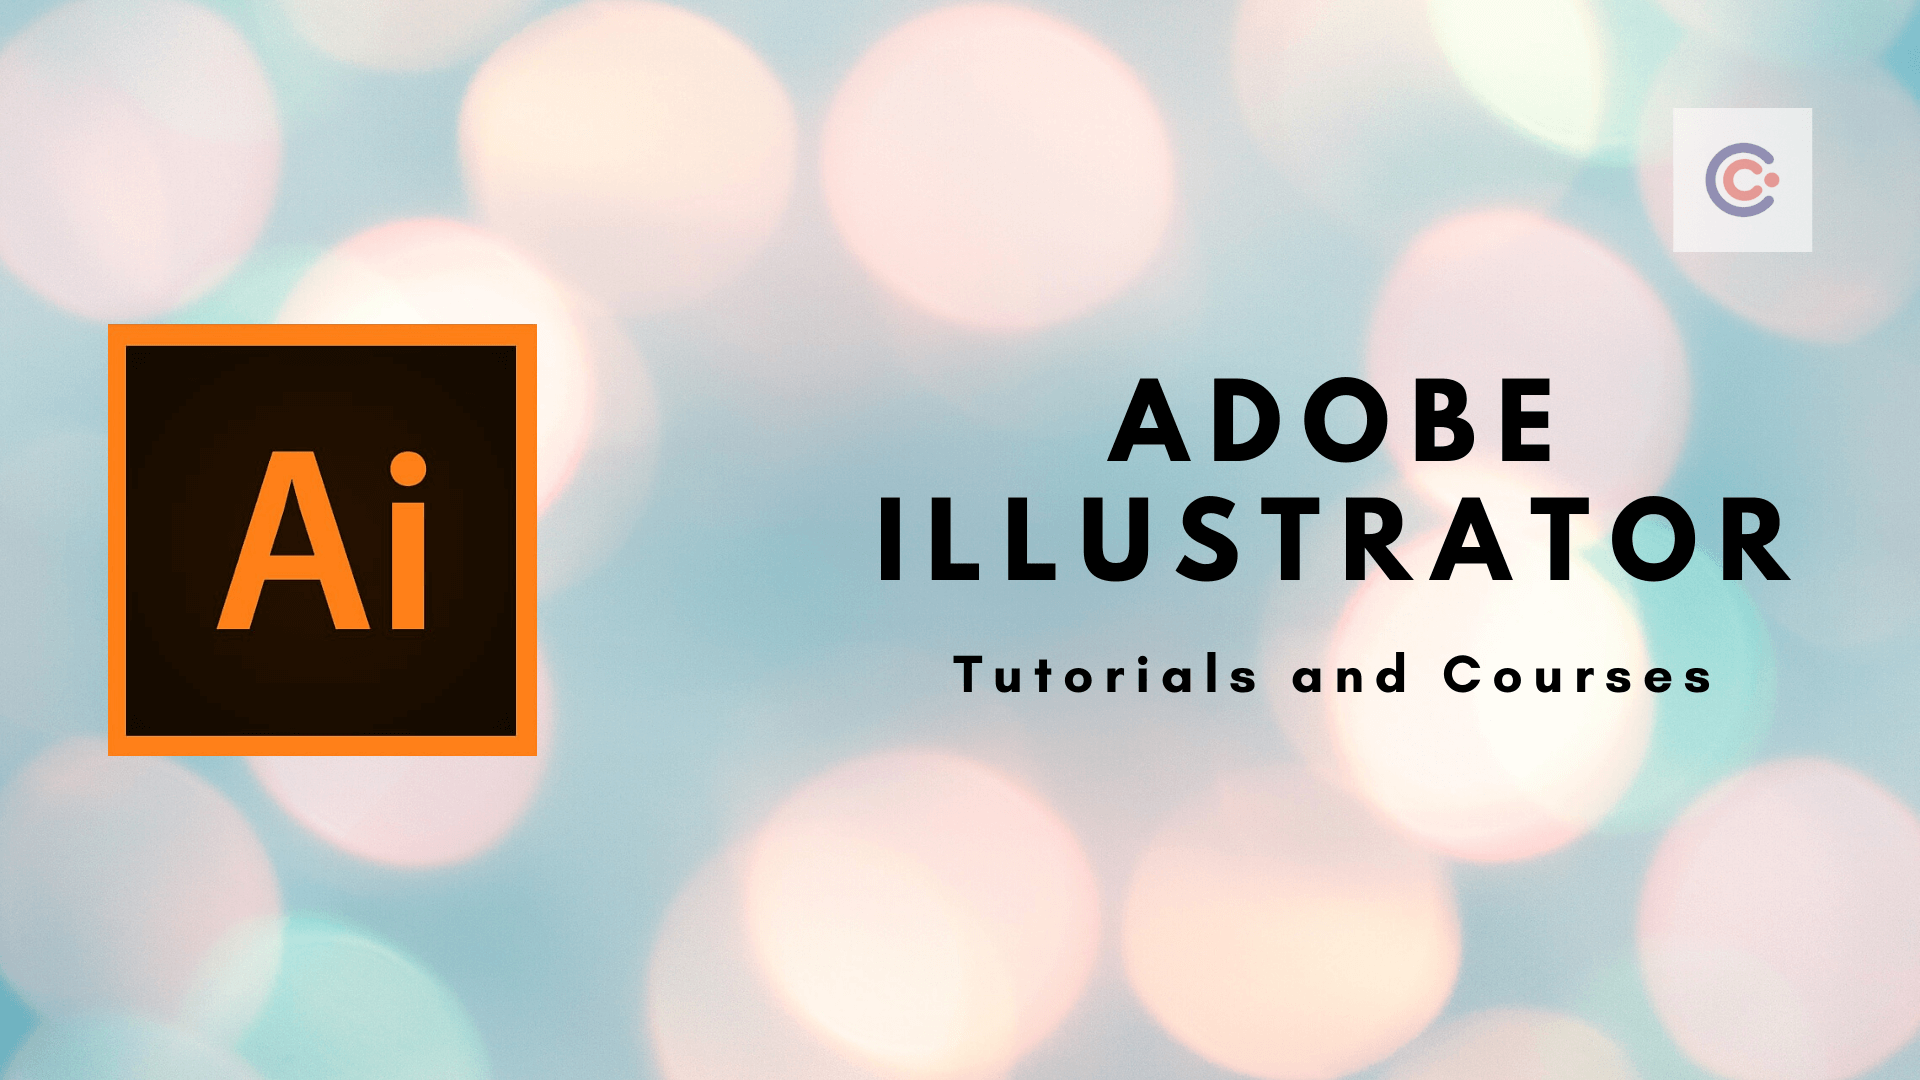 10 Best Adobe Illustrator Tutorials and Courses - Learn Illustrator Online